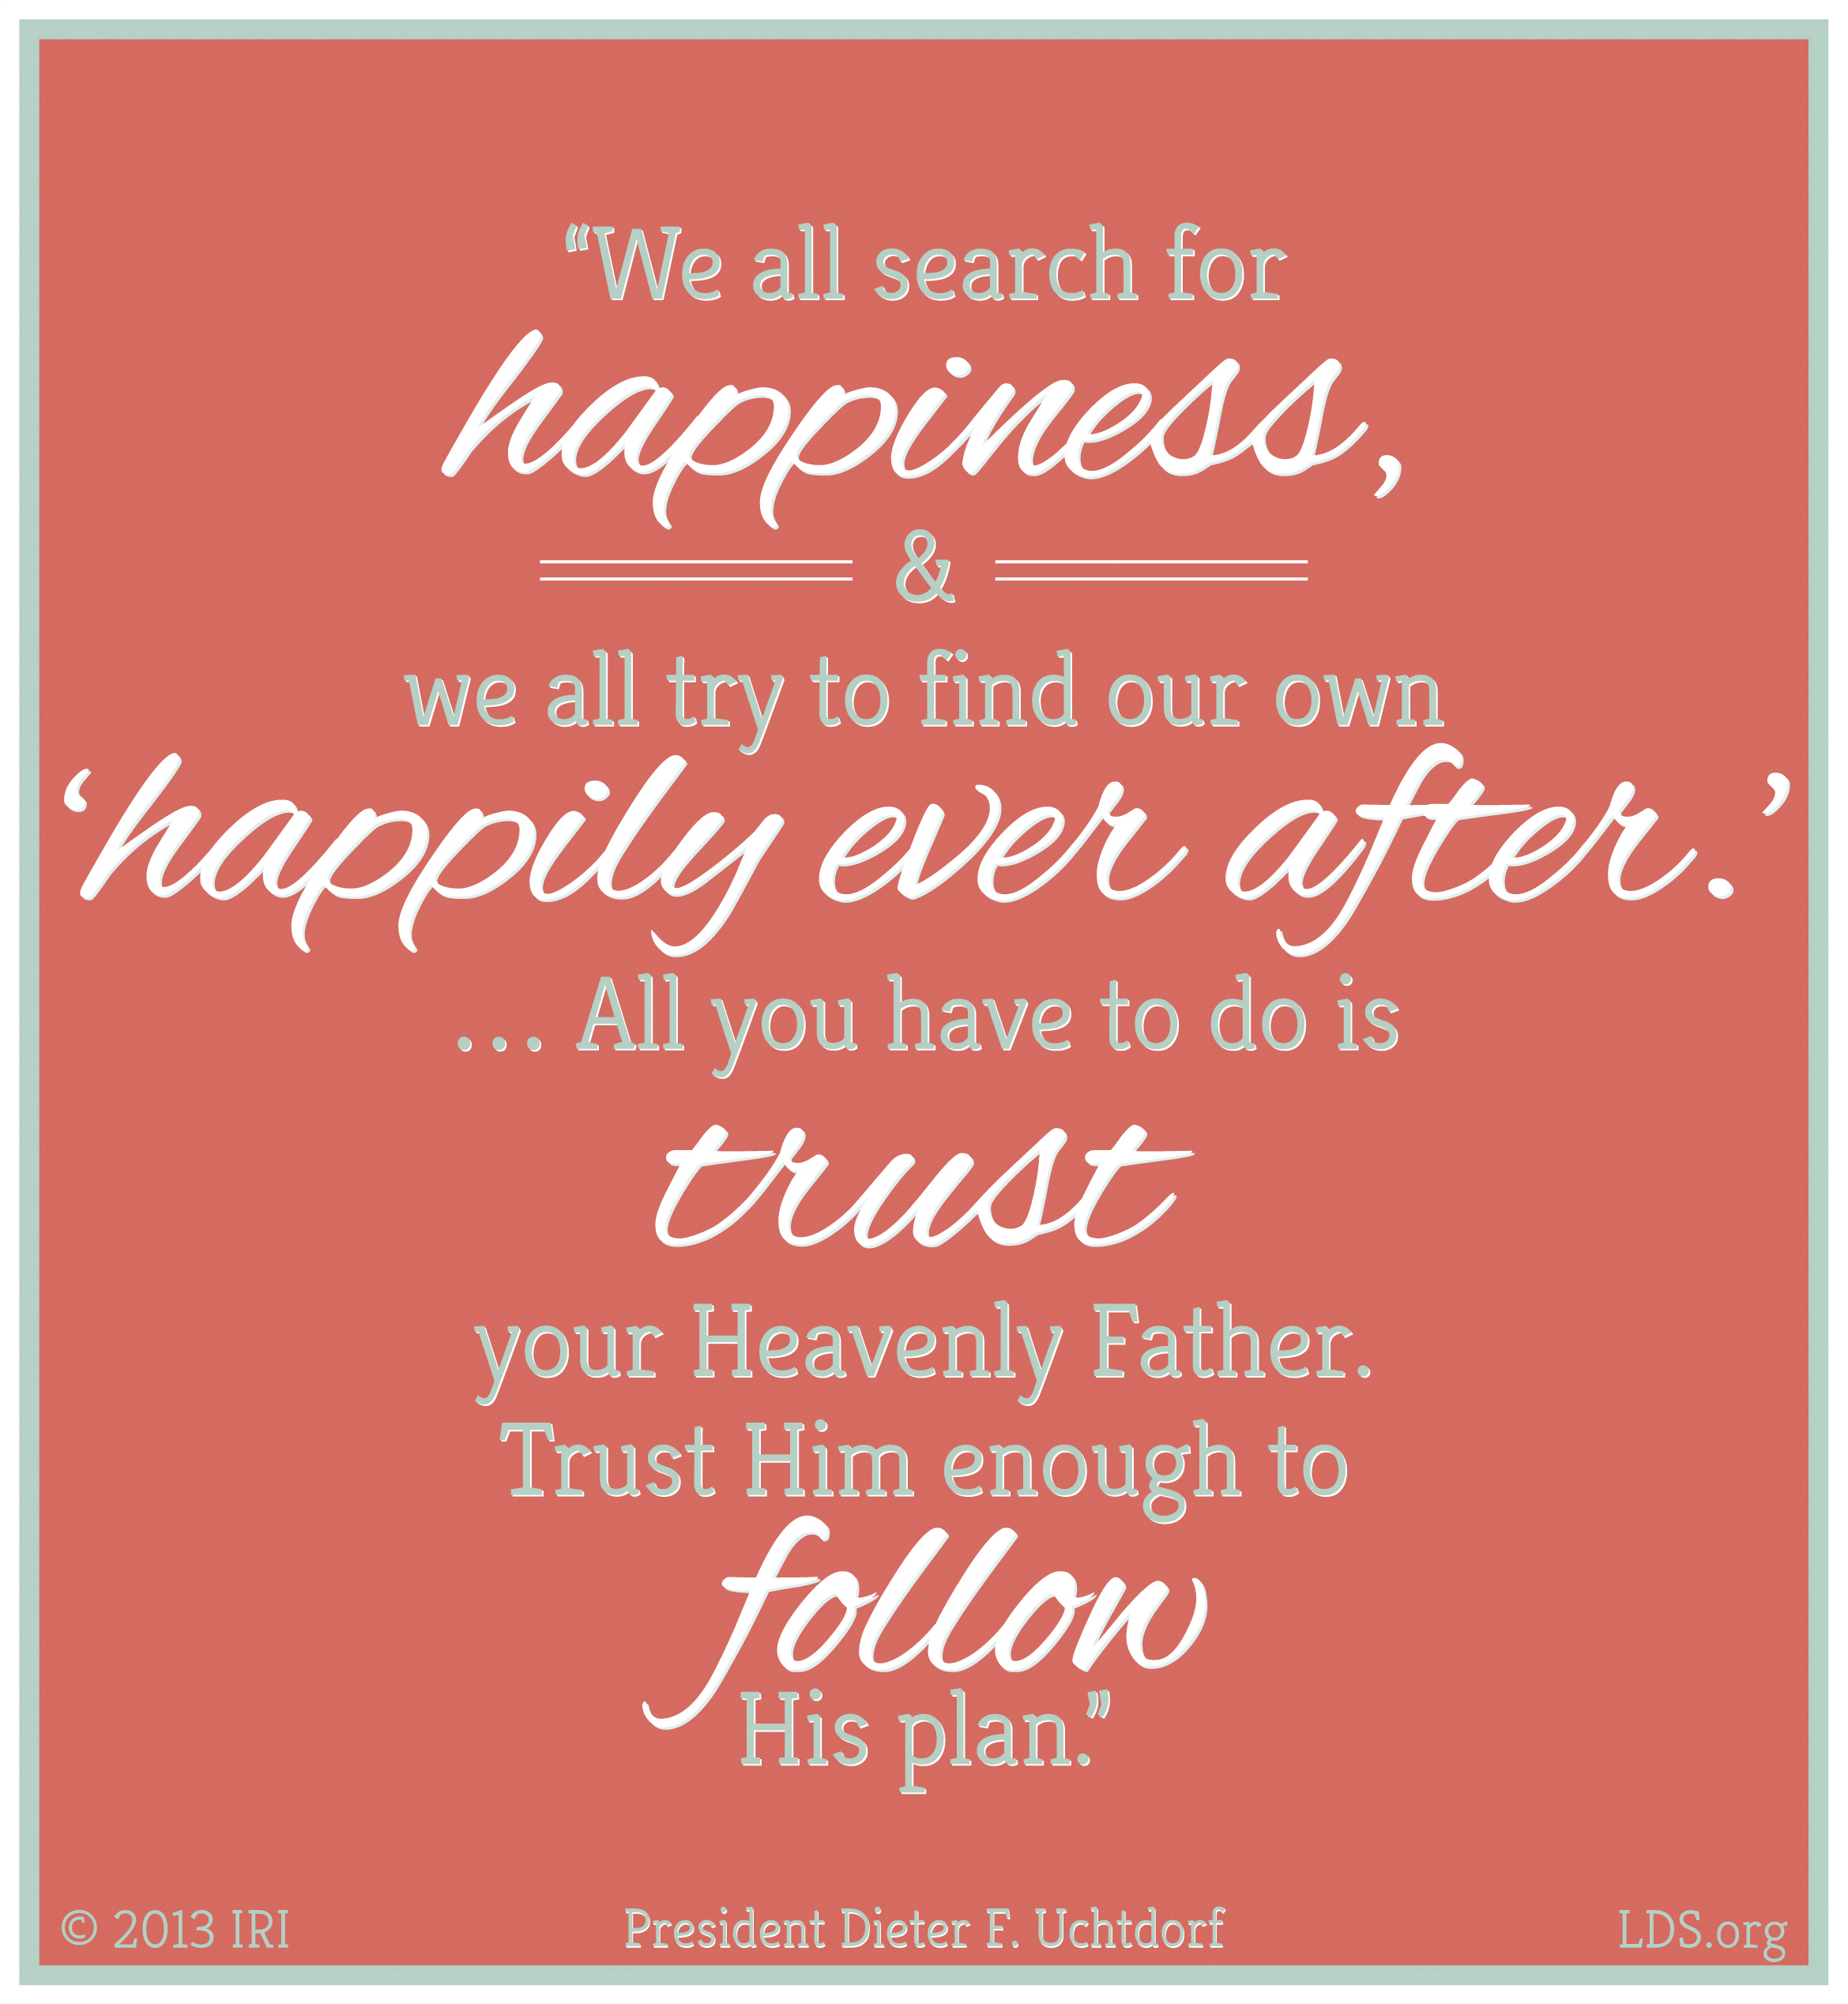 """""""We all search for happiness, and we all try to find our own 'happily ever after.' … All you have to do is trust your Heavenly Father. Trust Him enough to follow His plan.""""—President Dieter F. Uchtdorf, """"Your Happily Ever After"""""""